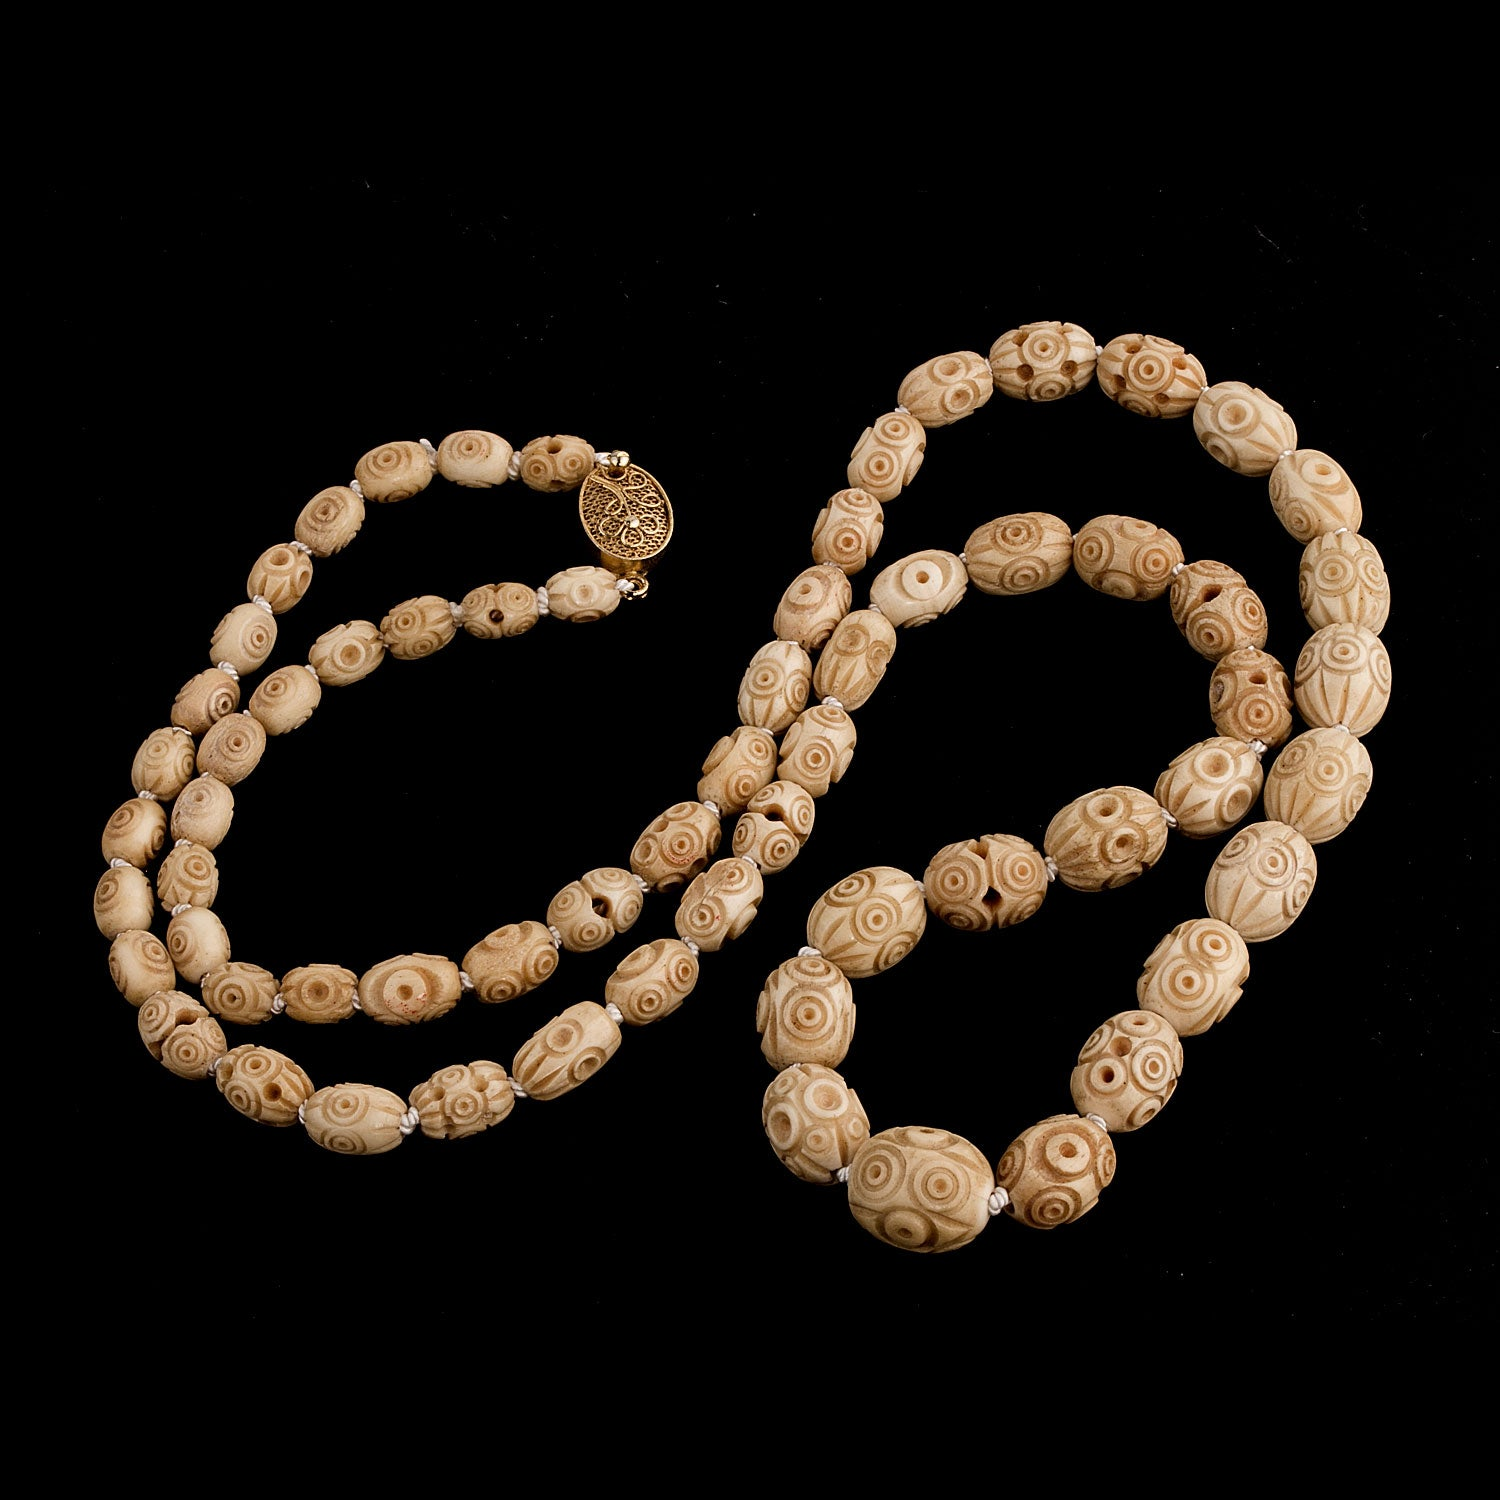 Vintage Art Deco 1930s Finely Hand Carved Graduated Bone Bead Necklace Earthly Adornments